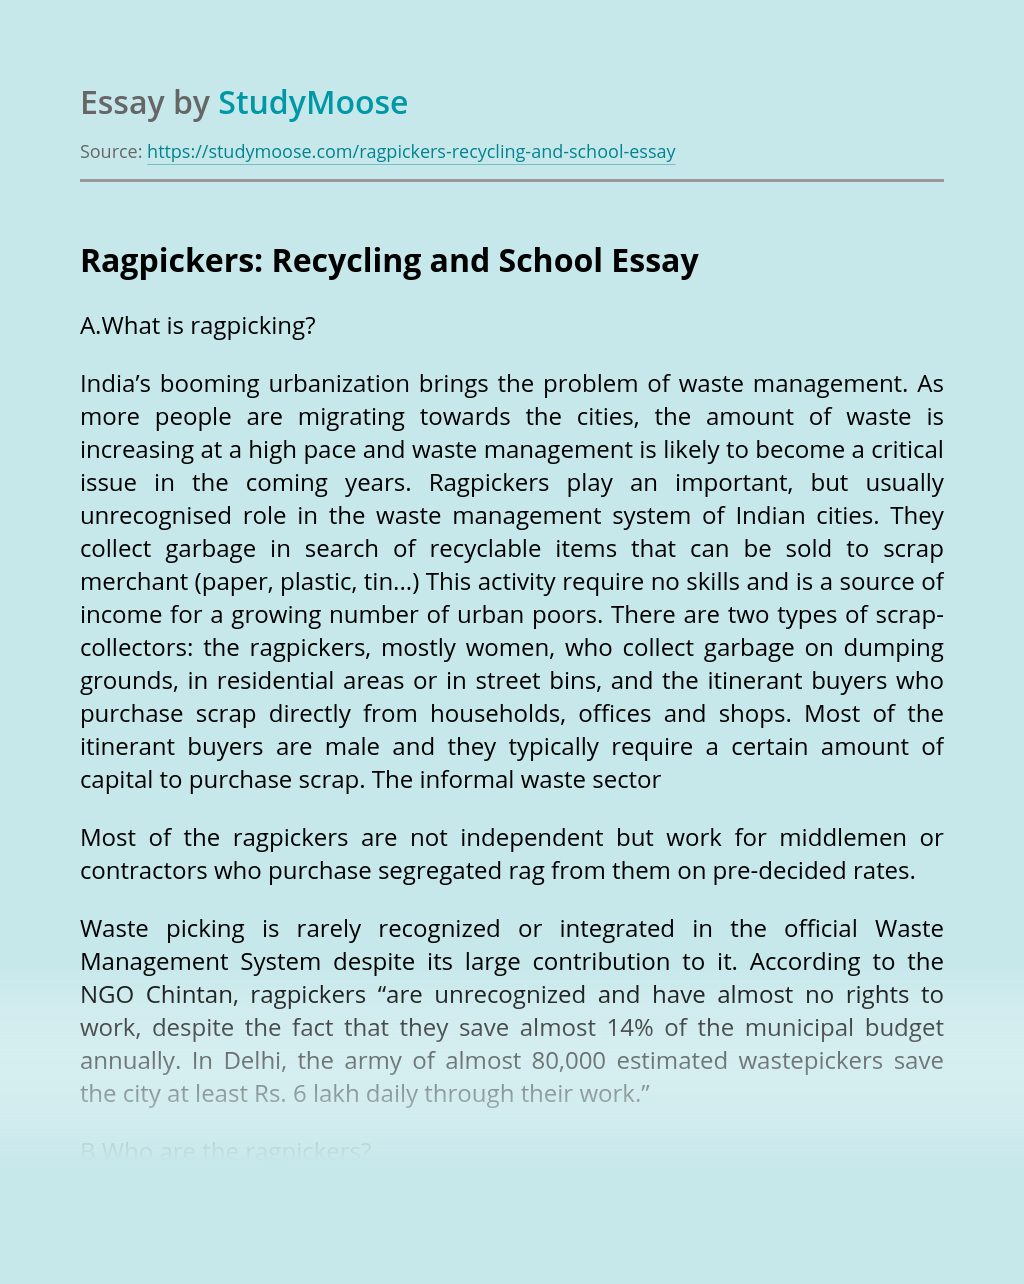 Ragpickers: Recycling and School